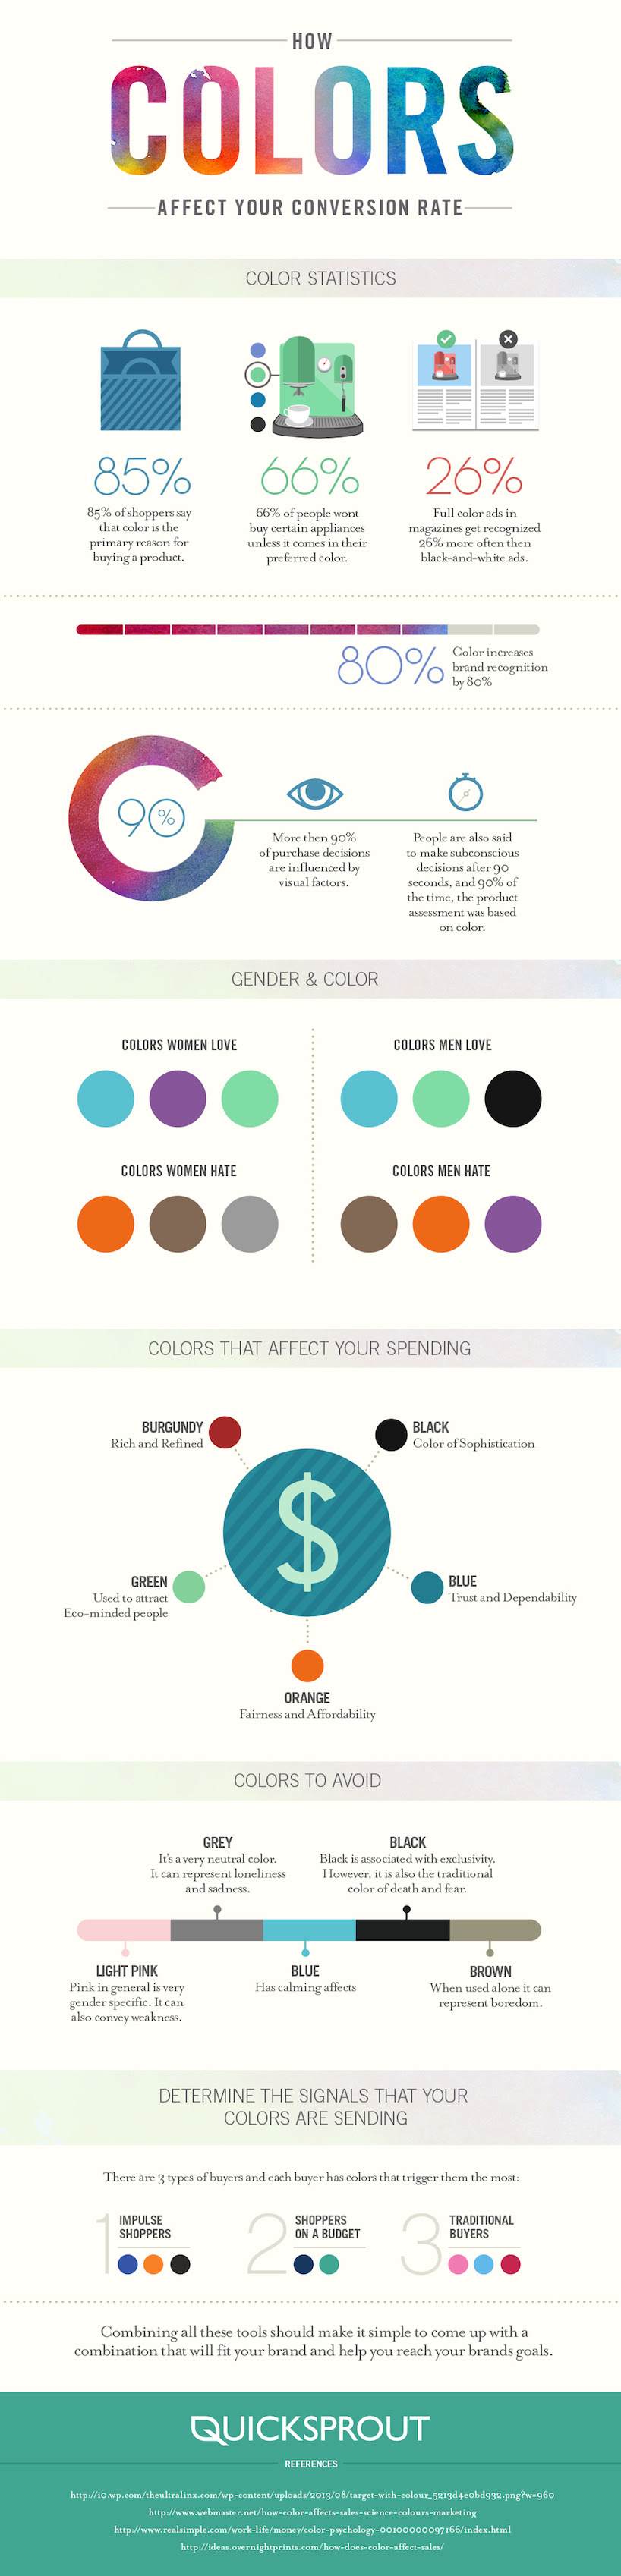 How Colors Affect Your Conversion Rate #Infographic #GraphicDesign